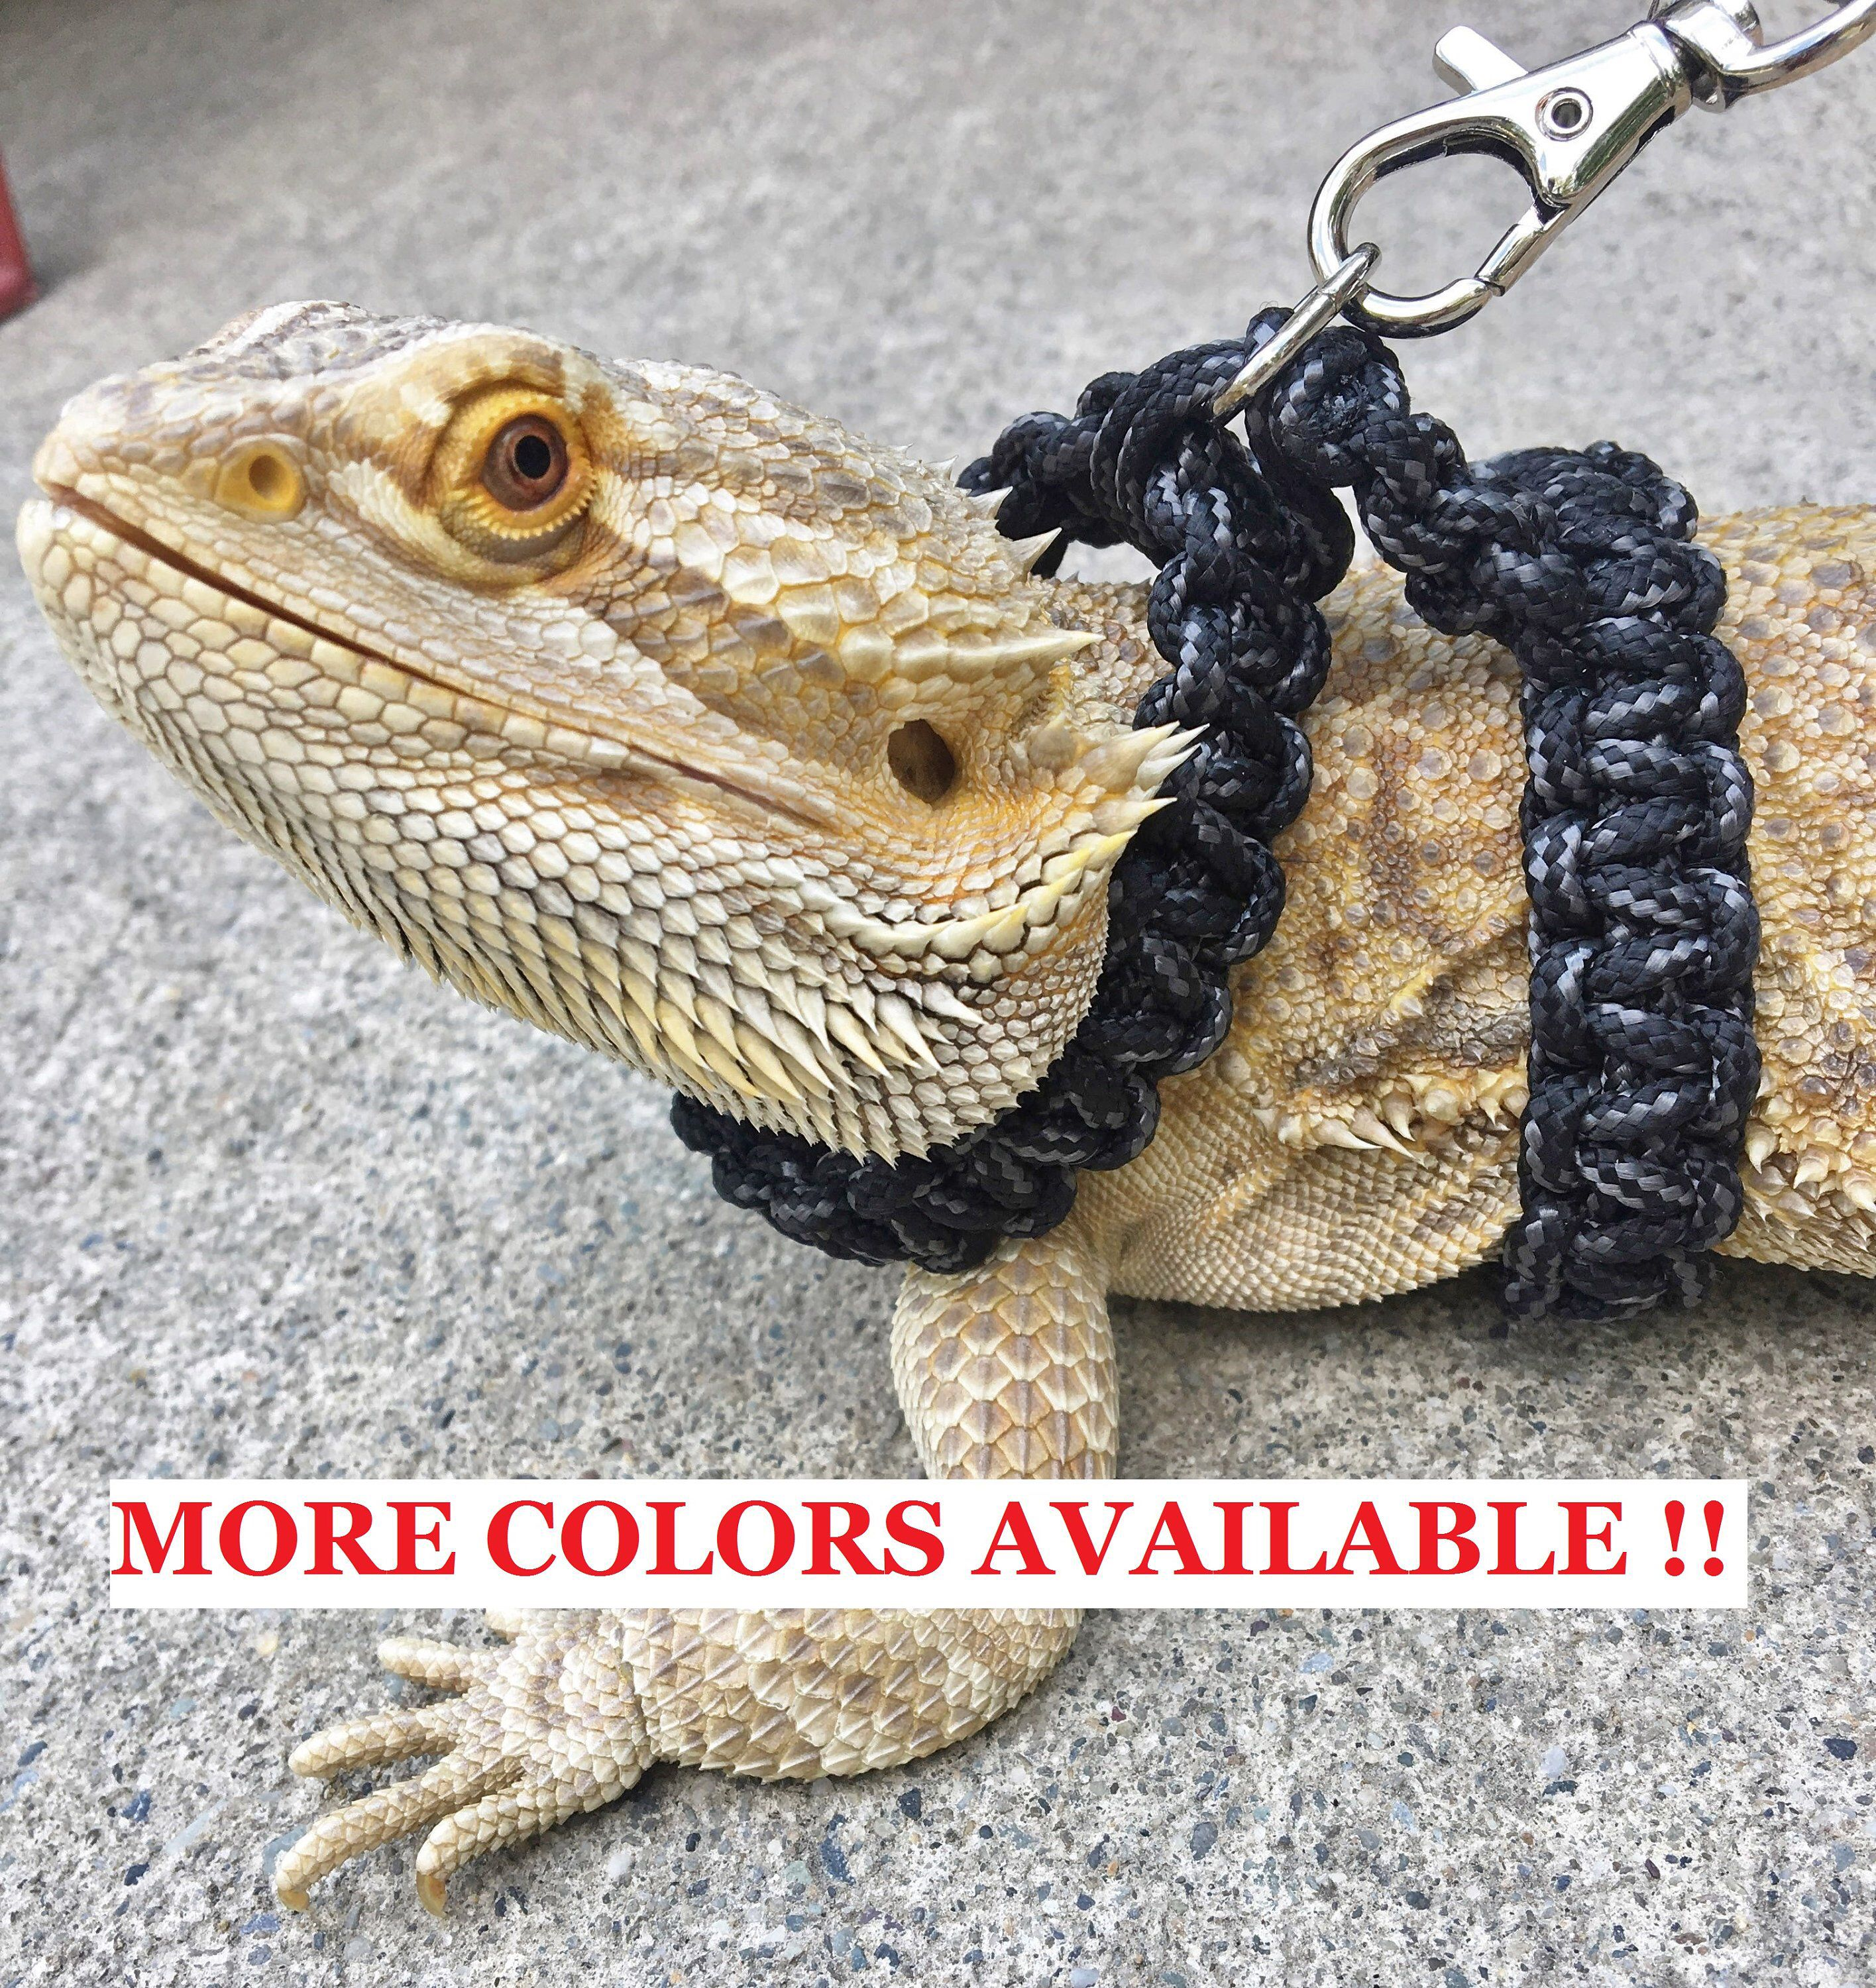 Reptile Harness Bearded Dragon Paracord Harness / collar